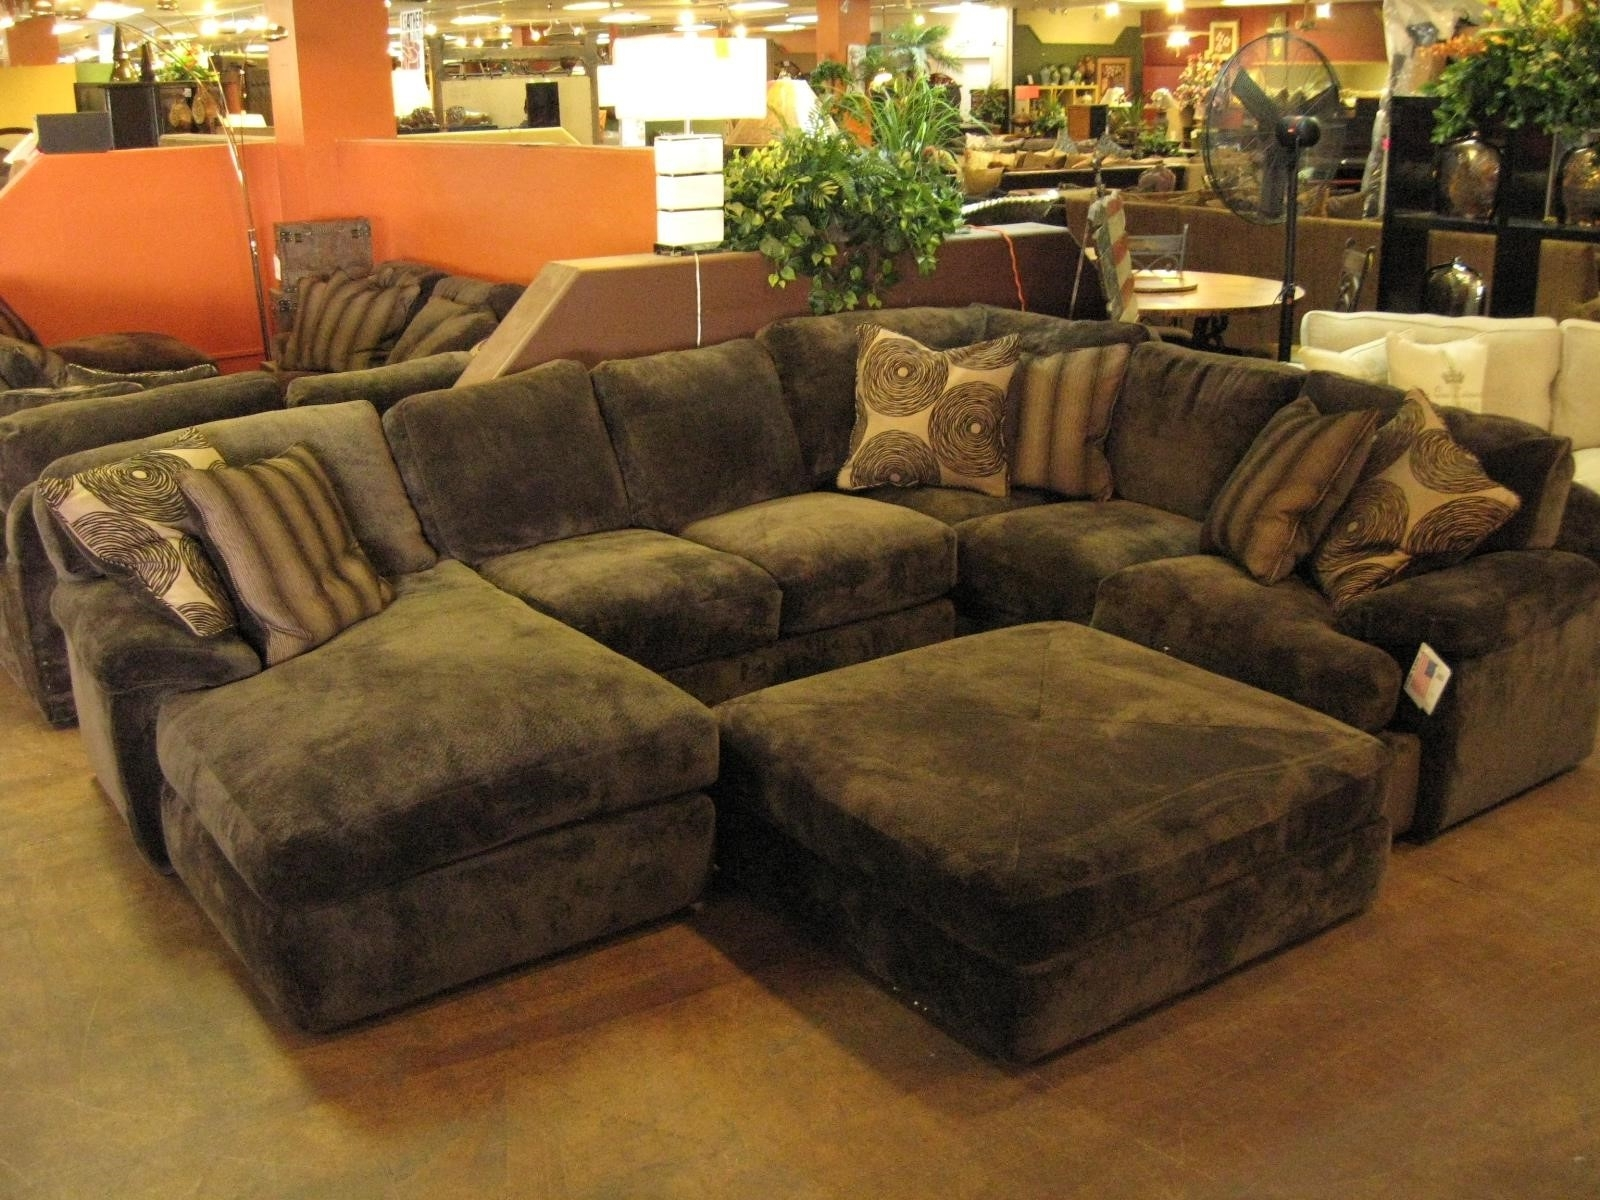 Trendy Ontario Canada Sectional Sofas Within Sofa : Fascinating Large Sectional Sofa Classy Sofas On Home (View 19 of 20)